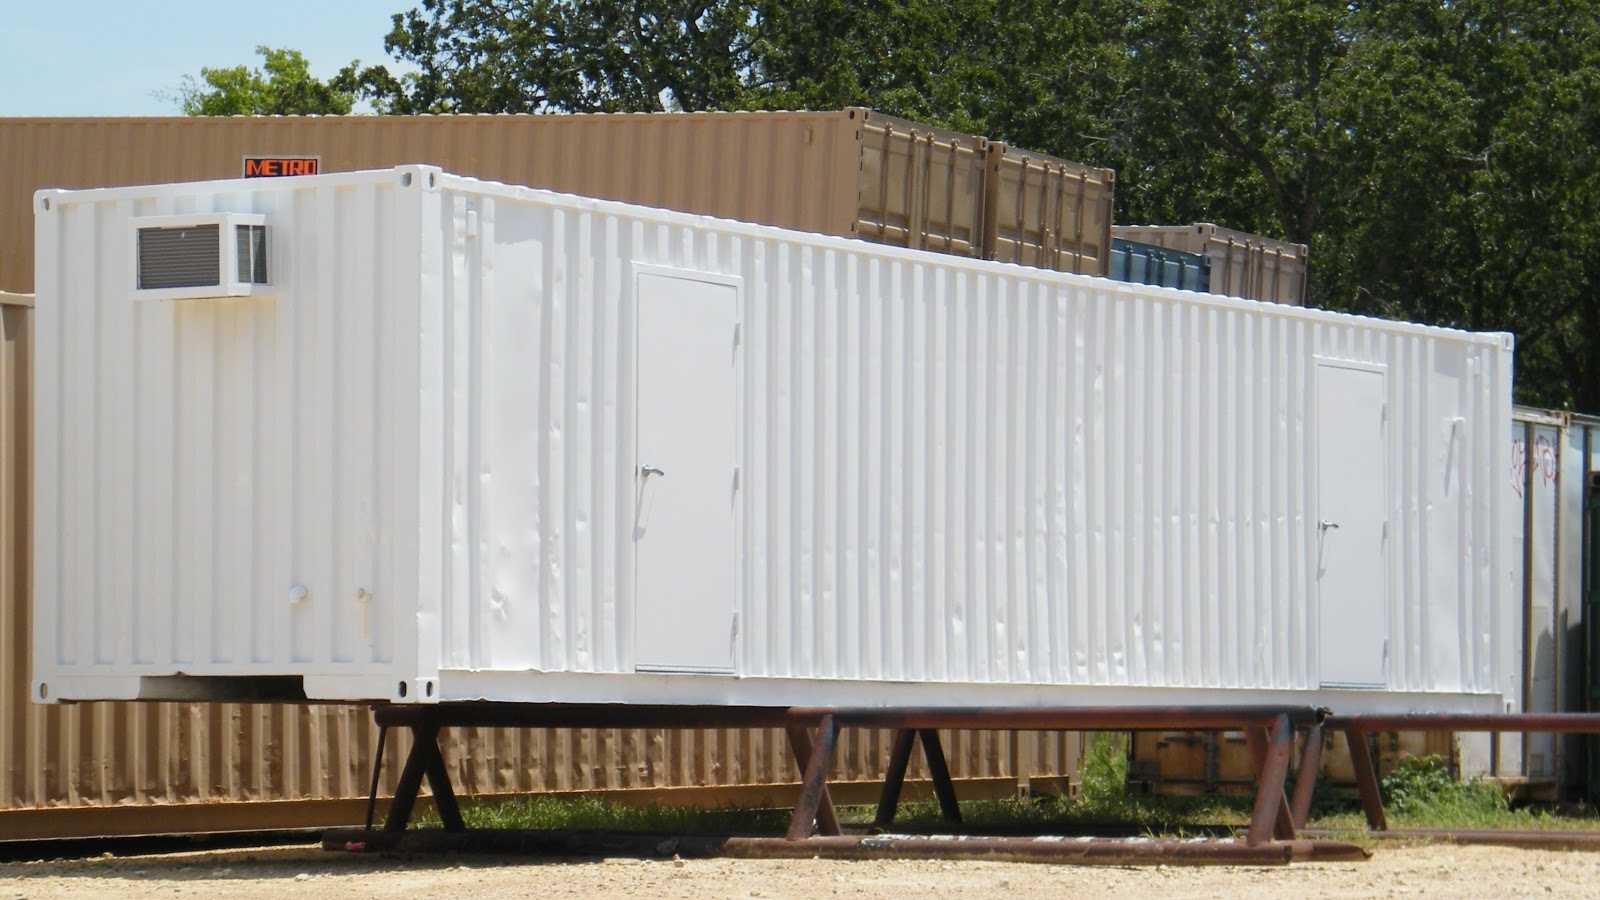 Texas container homes jesse c smith jr consultant more from metro container 39 s brenham texas - Container homes texas ...